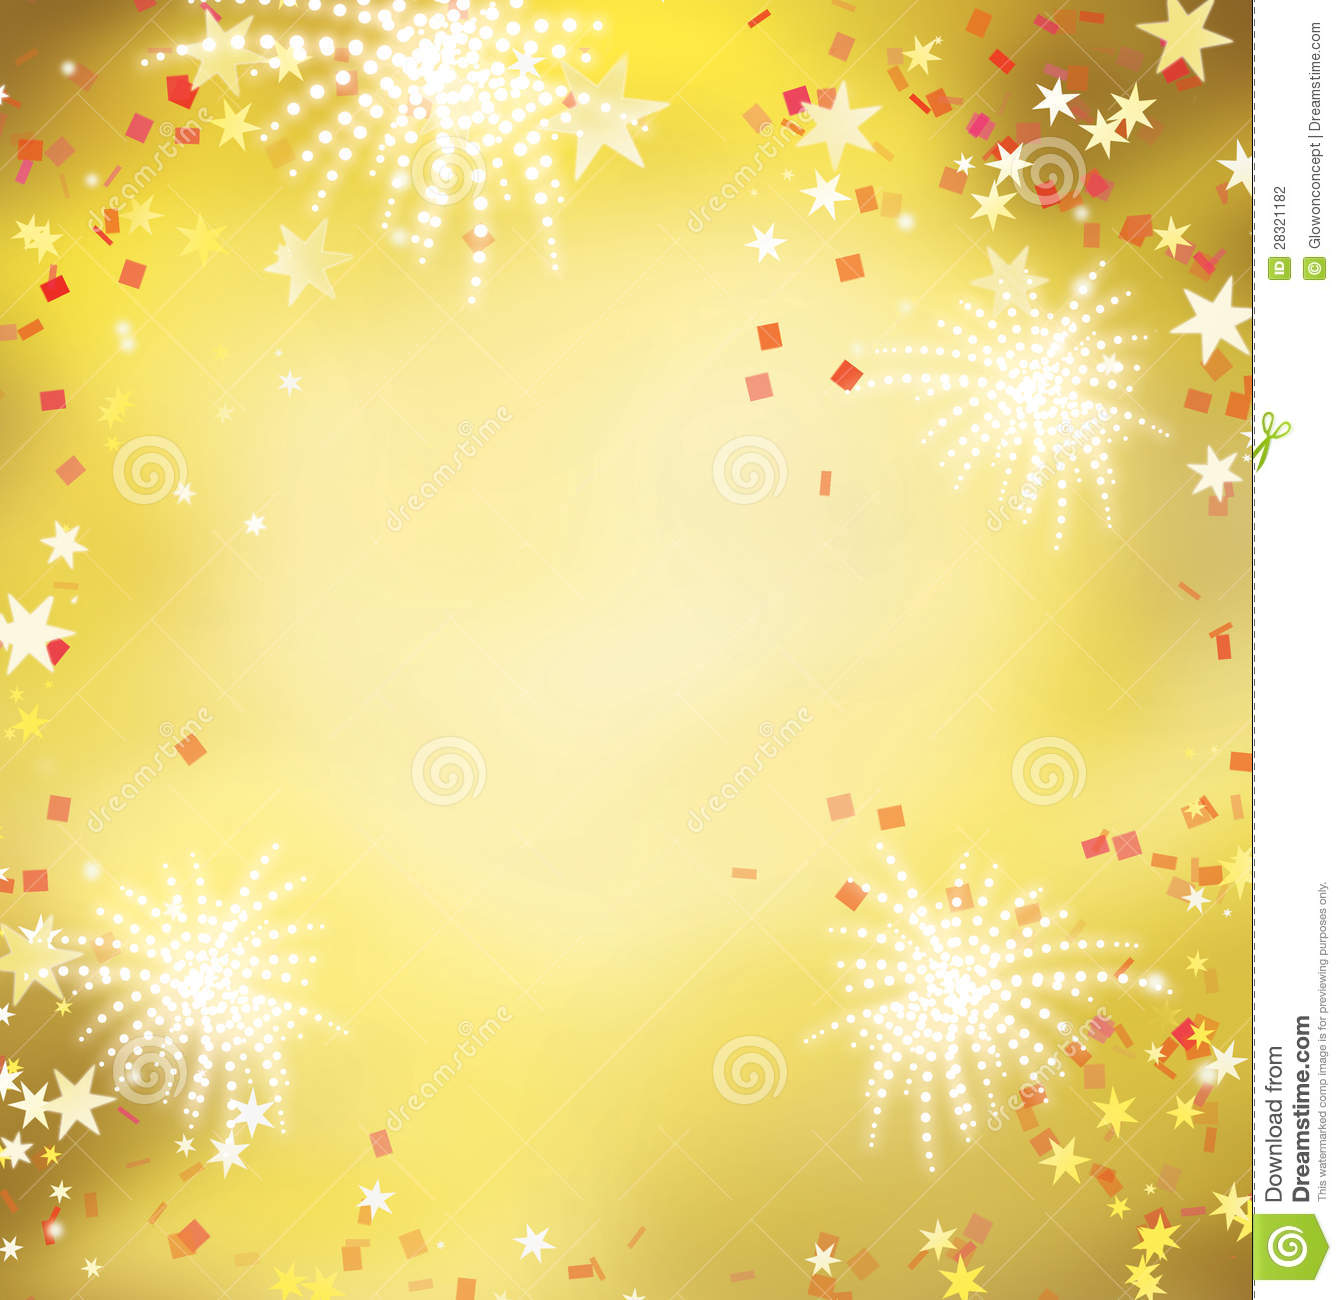 New Year Vector Designs Free Download